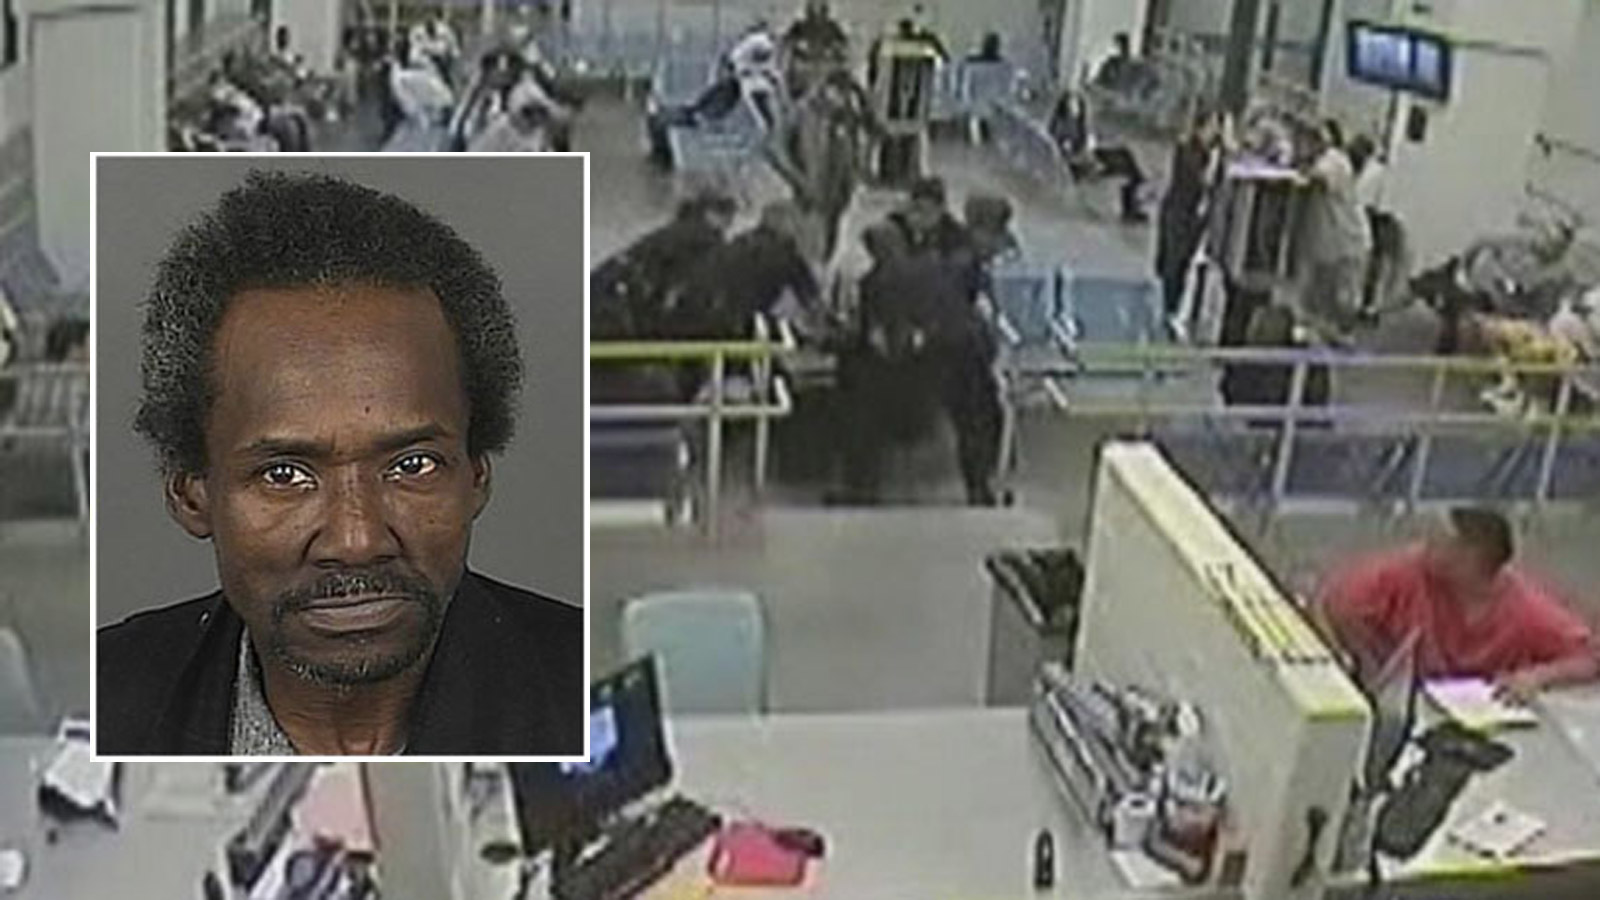 Images from the security video showing Marvin Booker's death (credit: CBS)